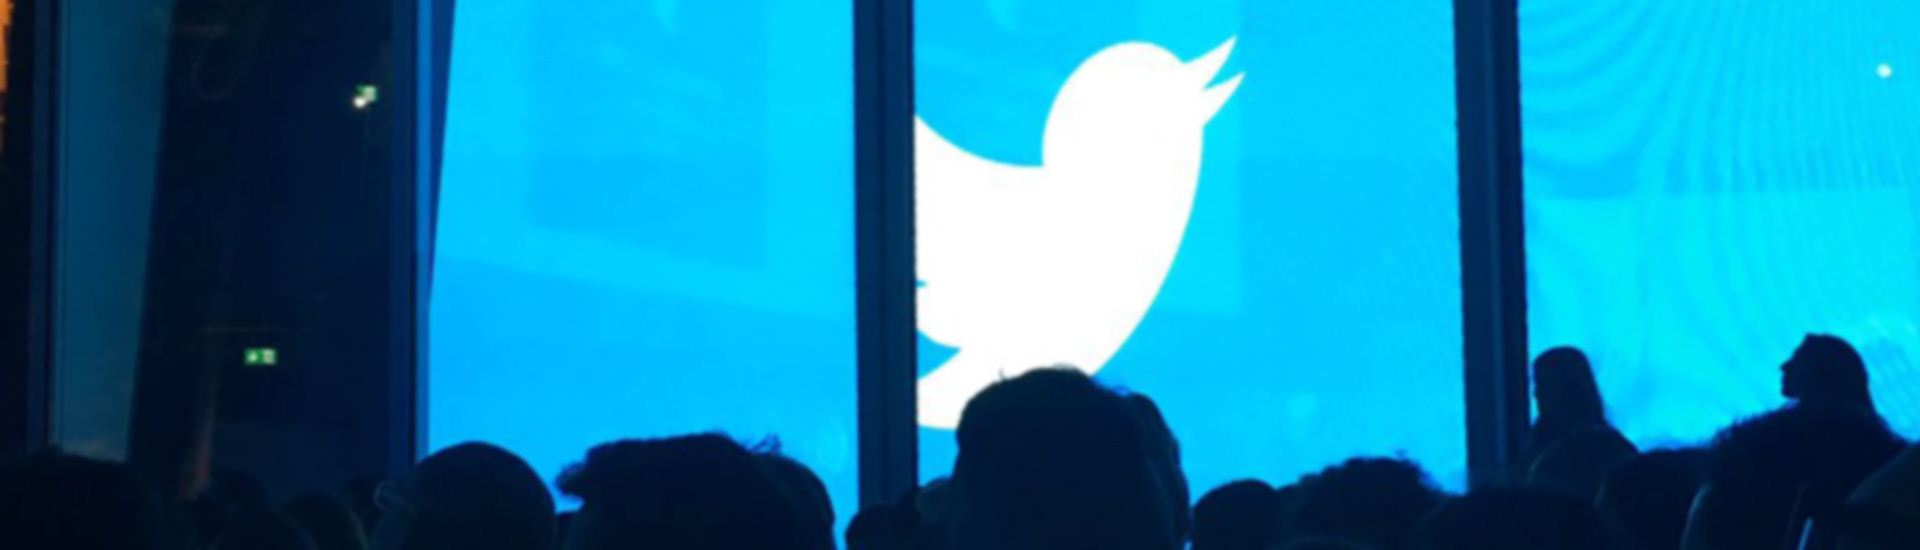 #PoweredbyTweets: la regia dell'evento a DigitalEvents